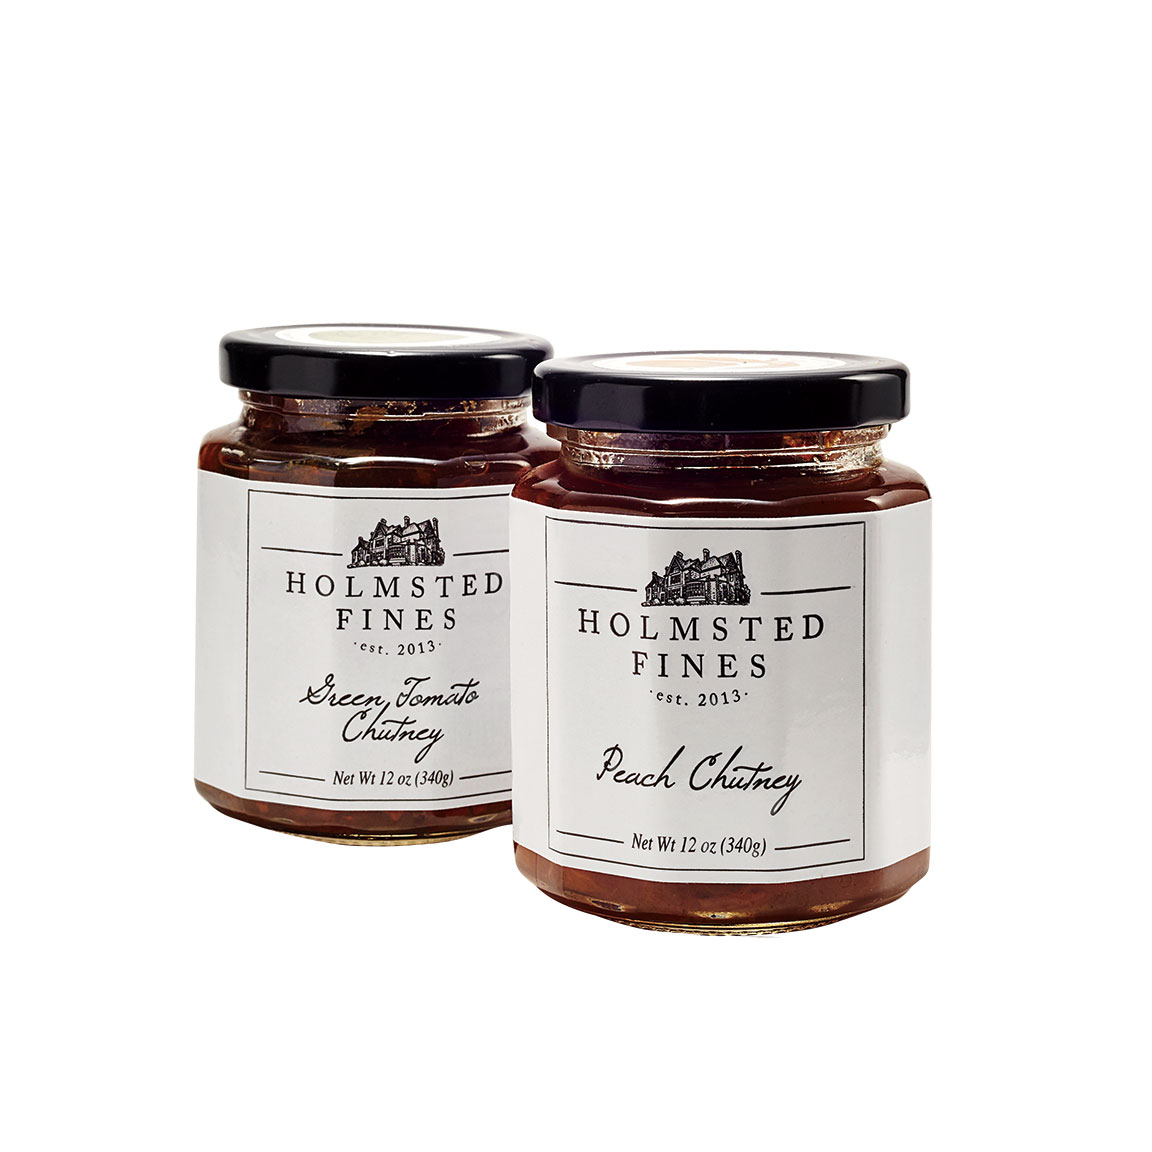 Holmsted Fines Chutney